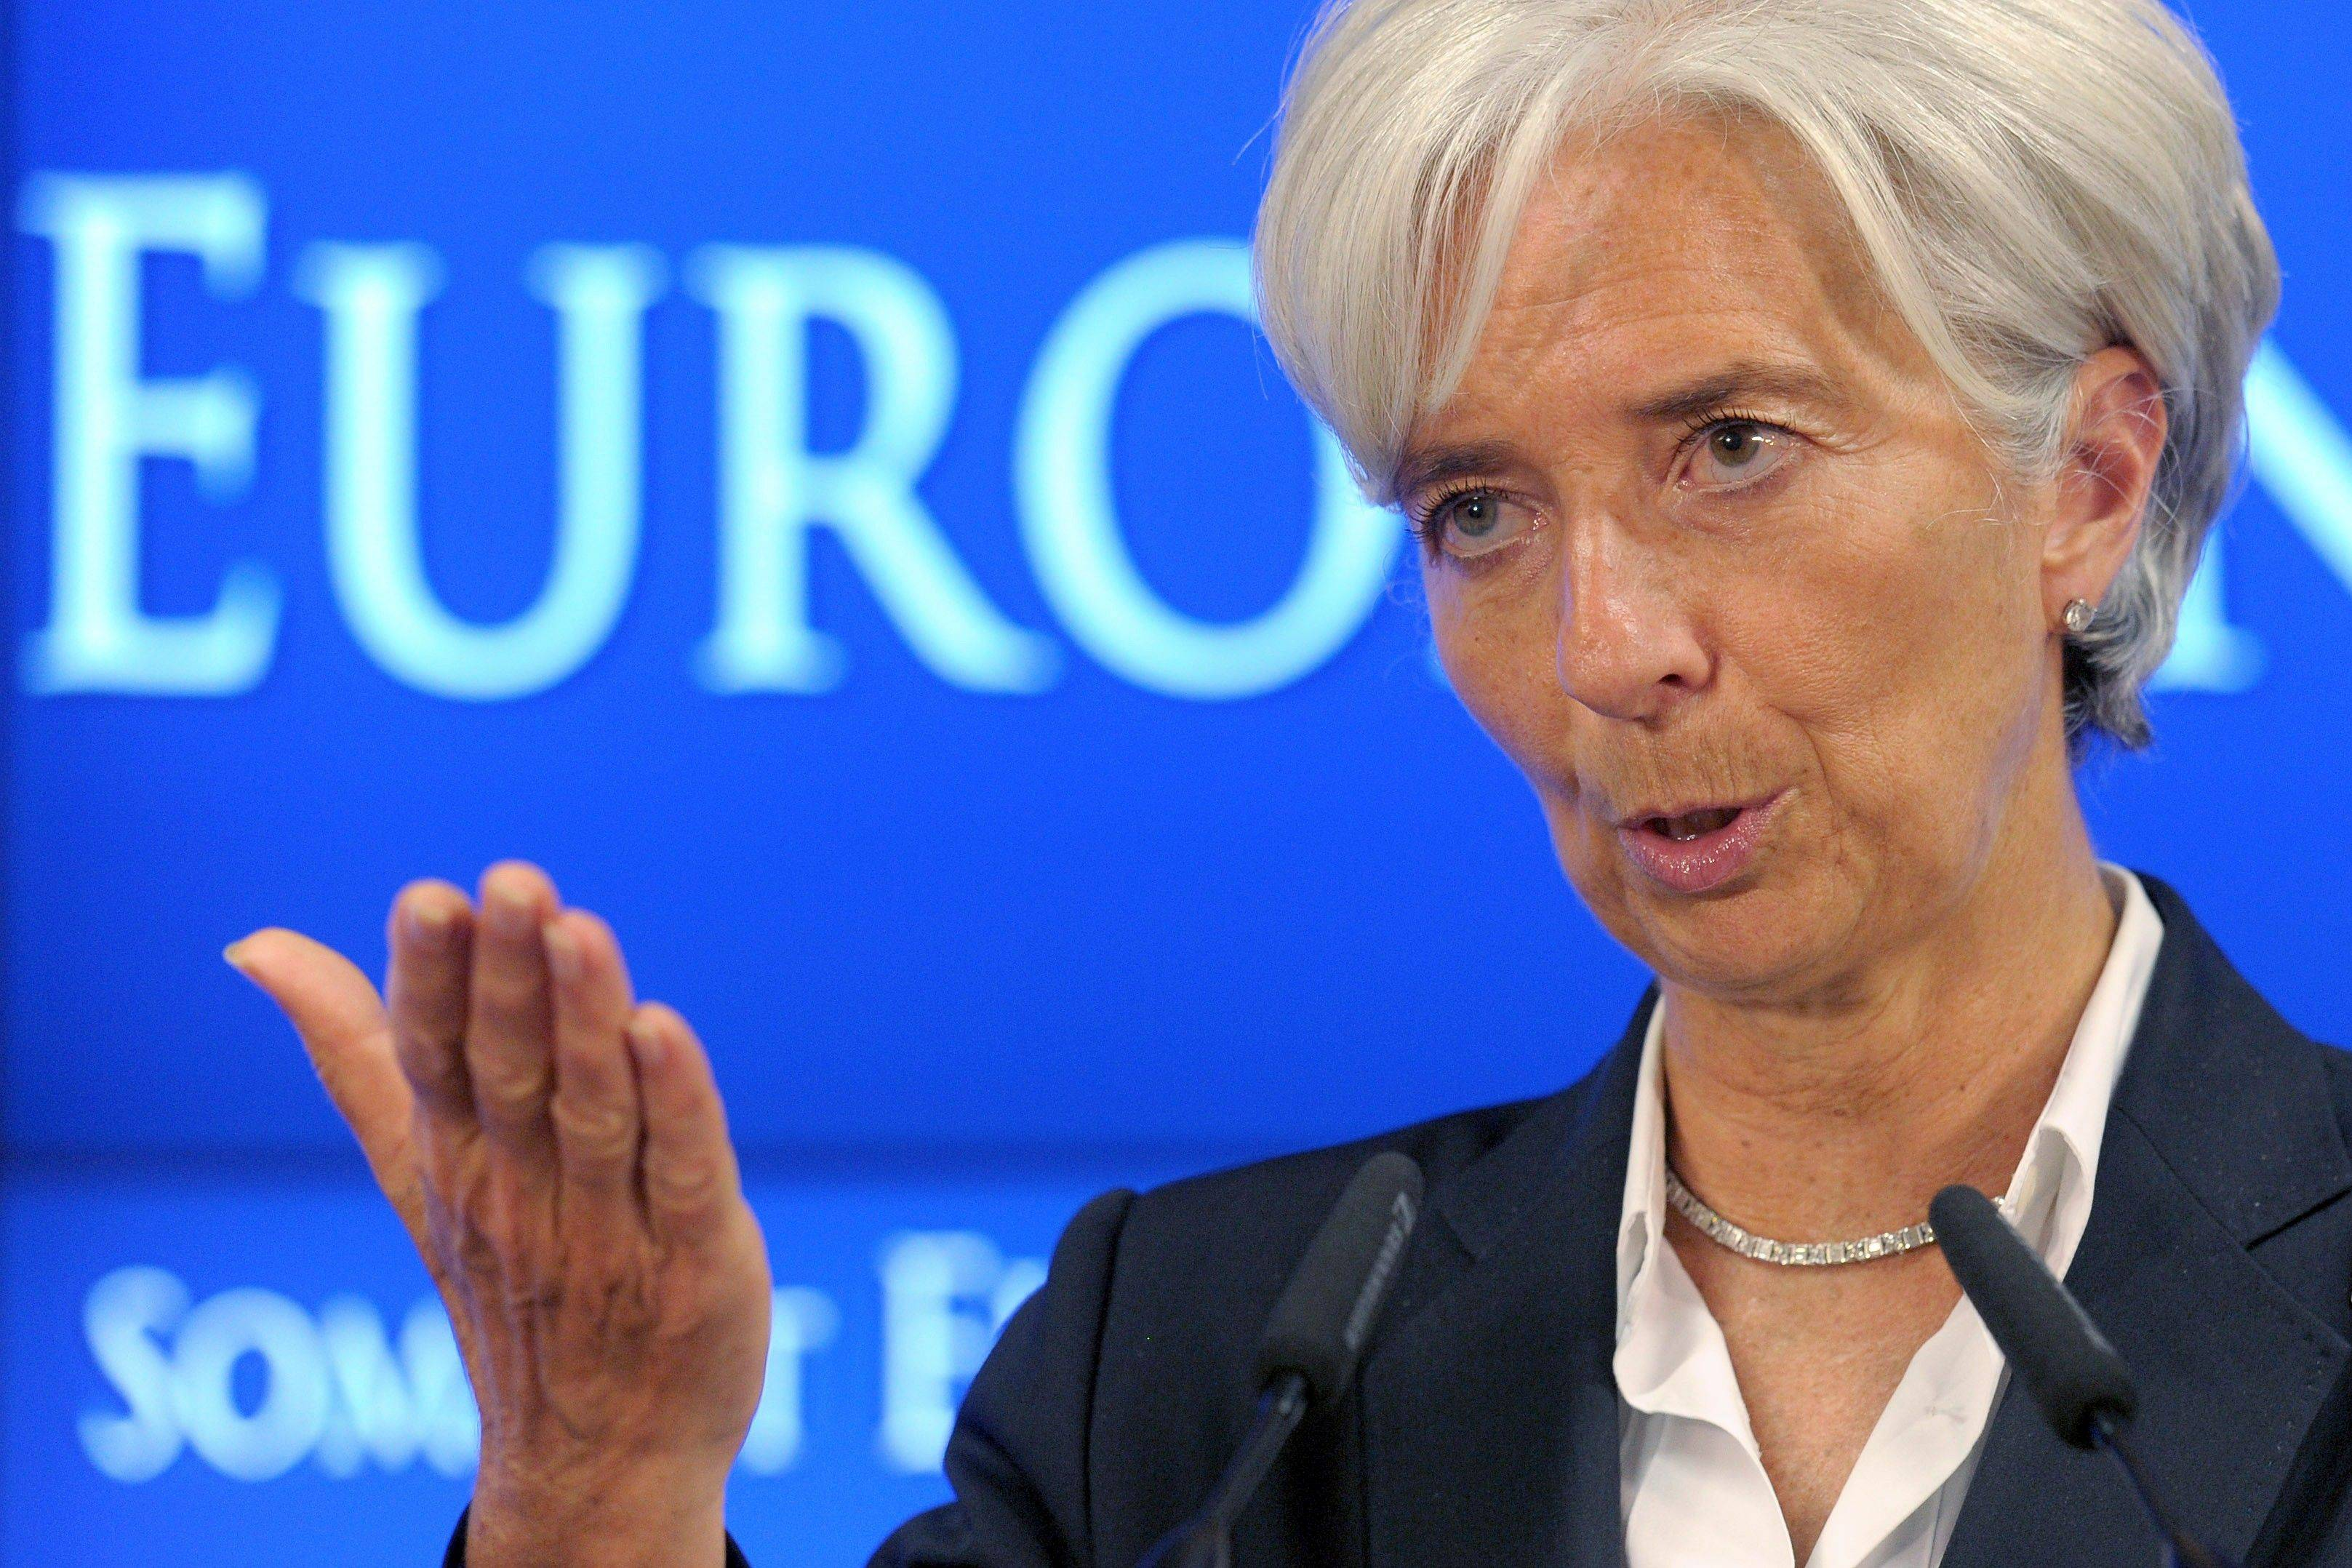 The International Monetary Fund has set some goals to increase the share of women in the organization, IMF Managing Director Christine Lagarde told a conference last week. Lagarde, who works with a board of directors where men hold 23 out of the 24 seats, has said she is in favor of more gender balance in the financial sector.